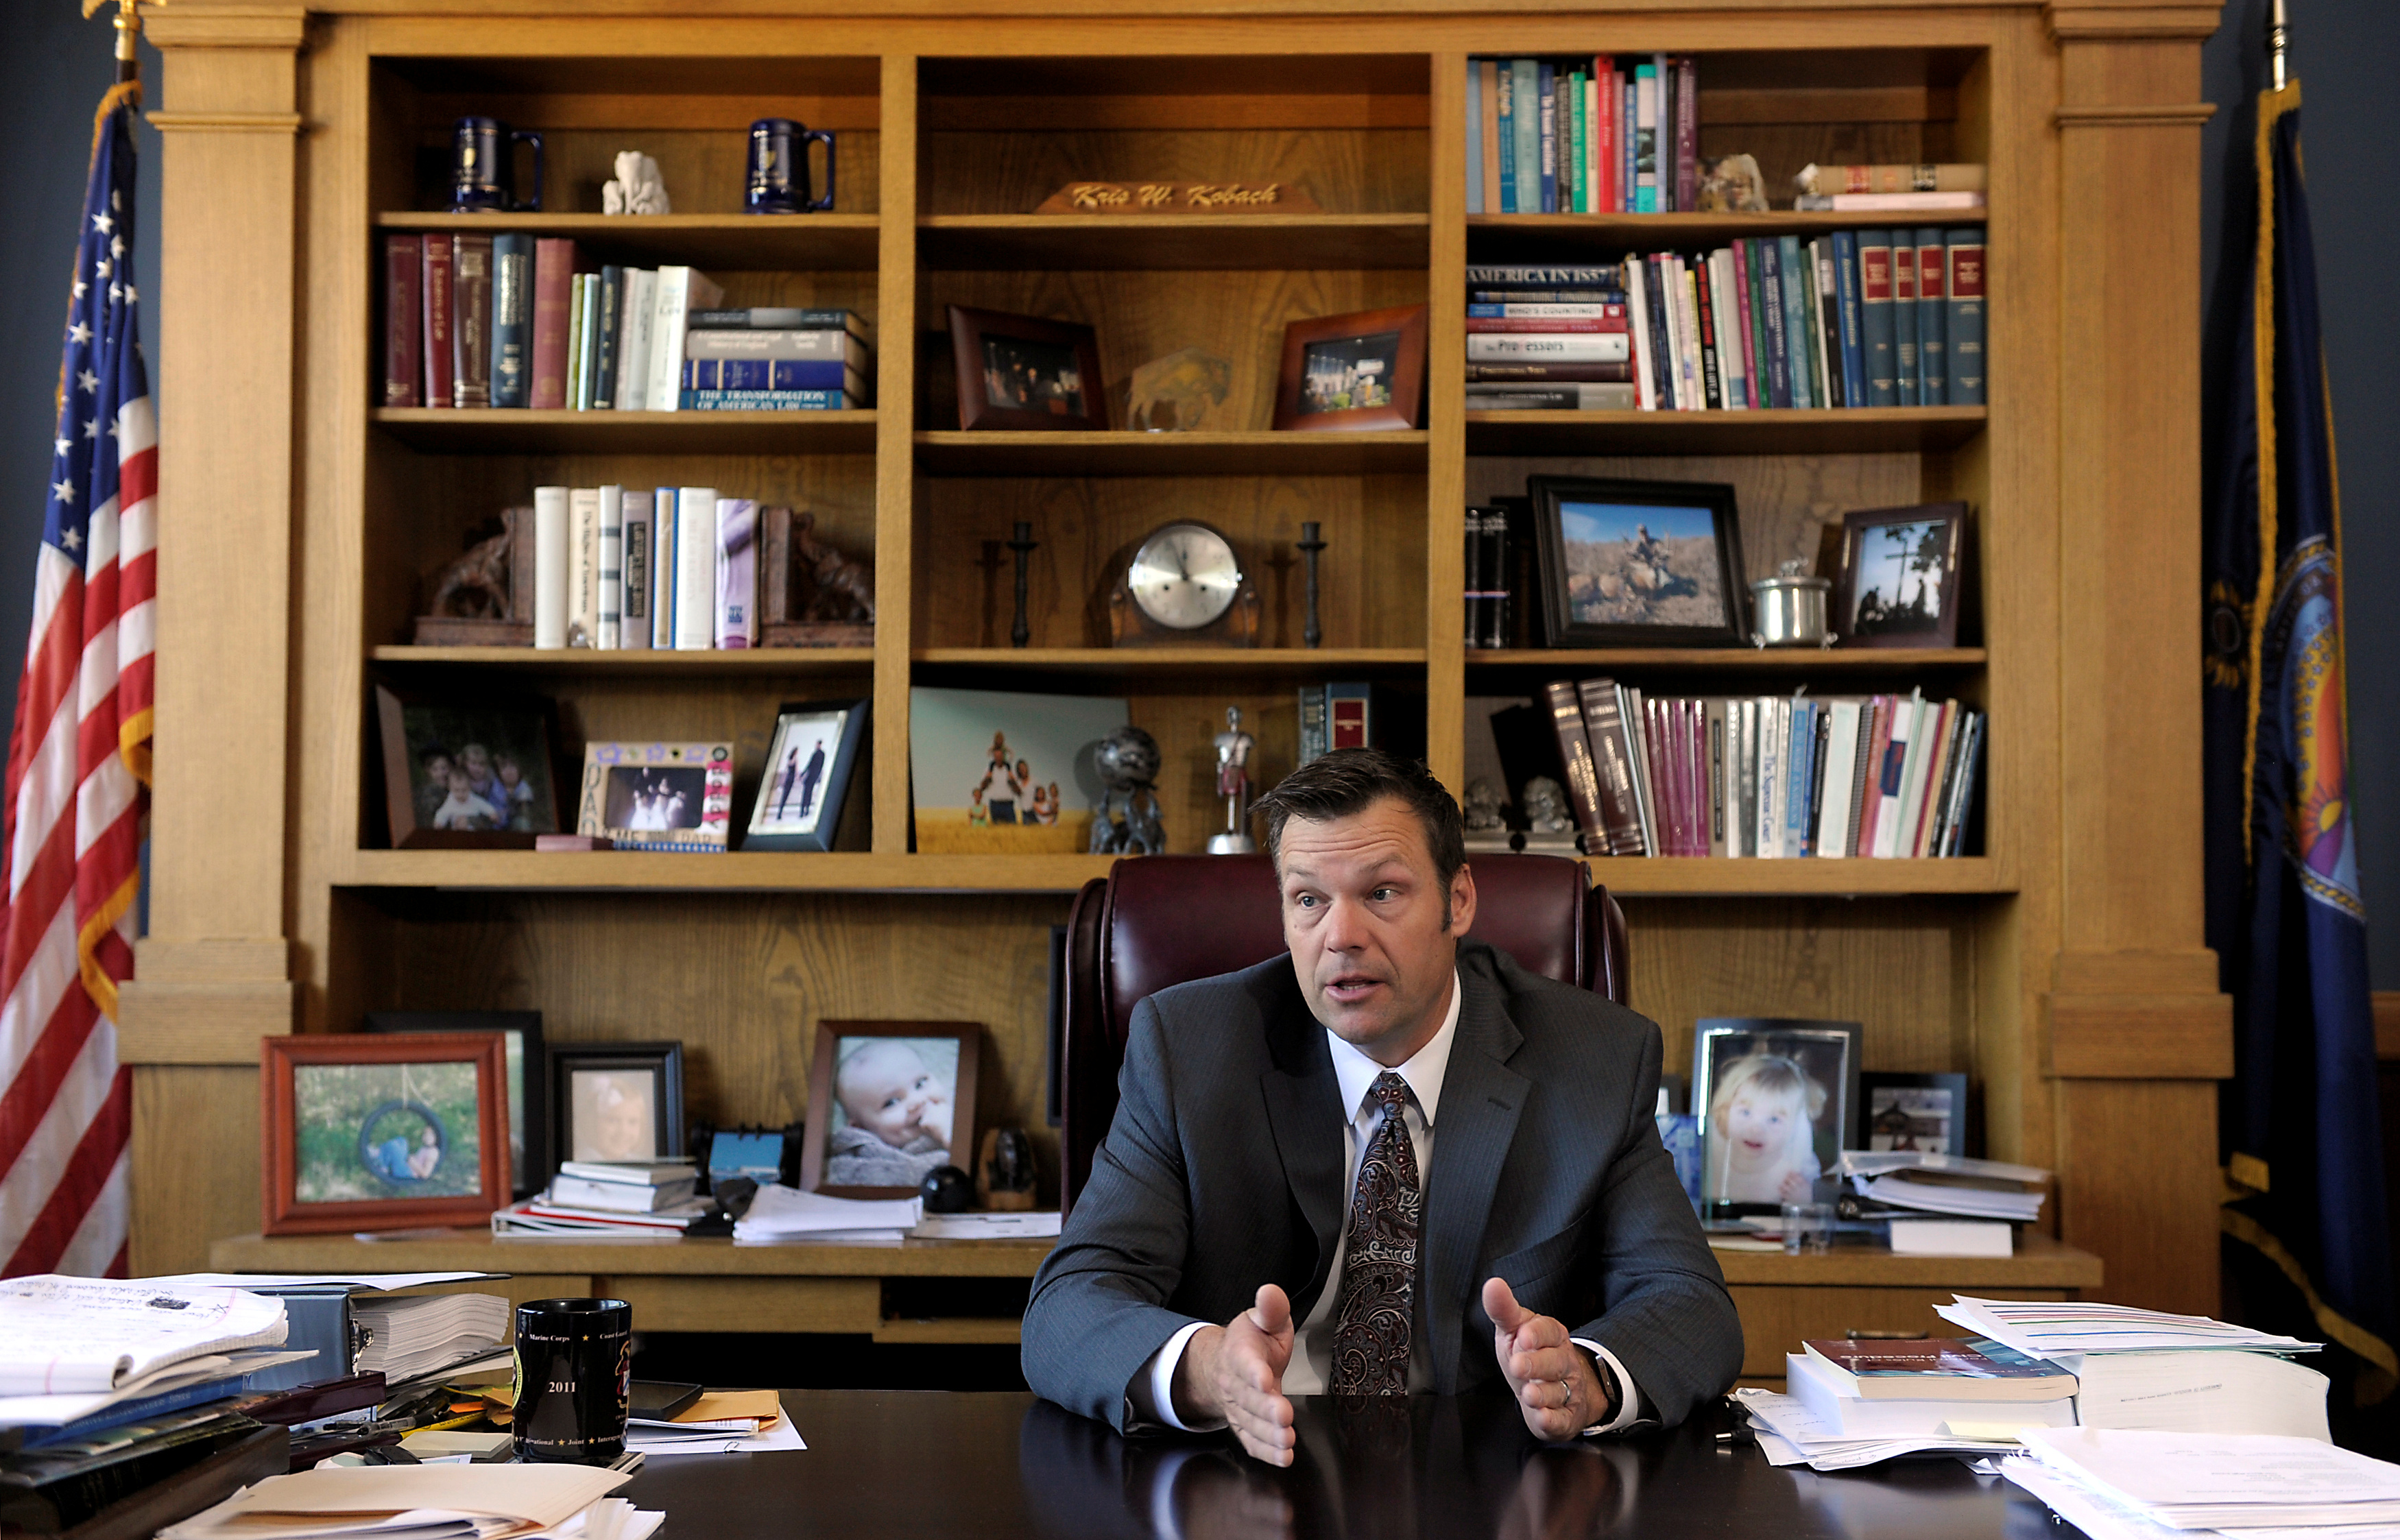 donald trump u0026 39 s cabinet  kris kobach  possible attorney